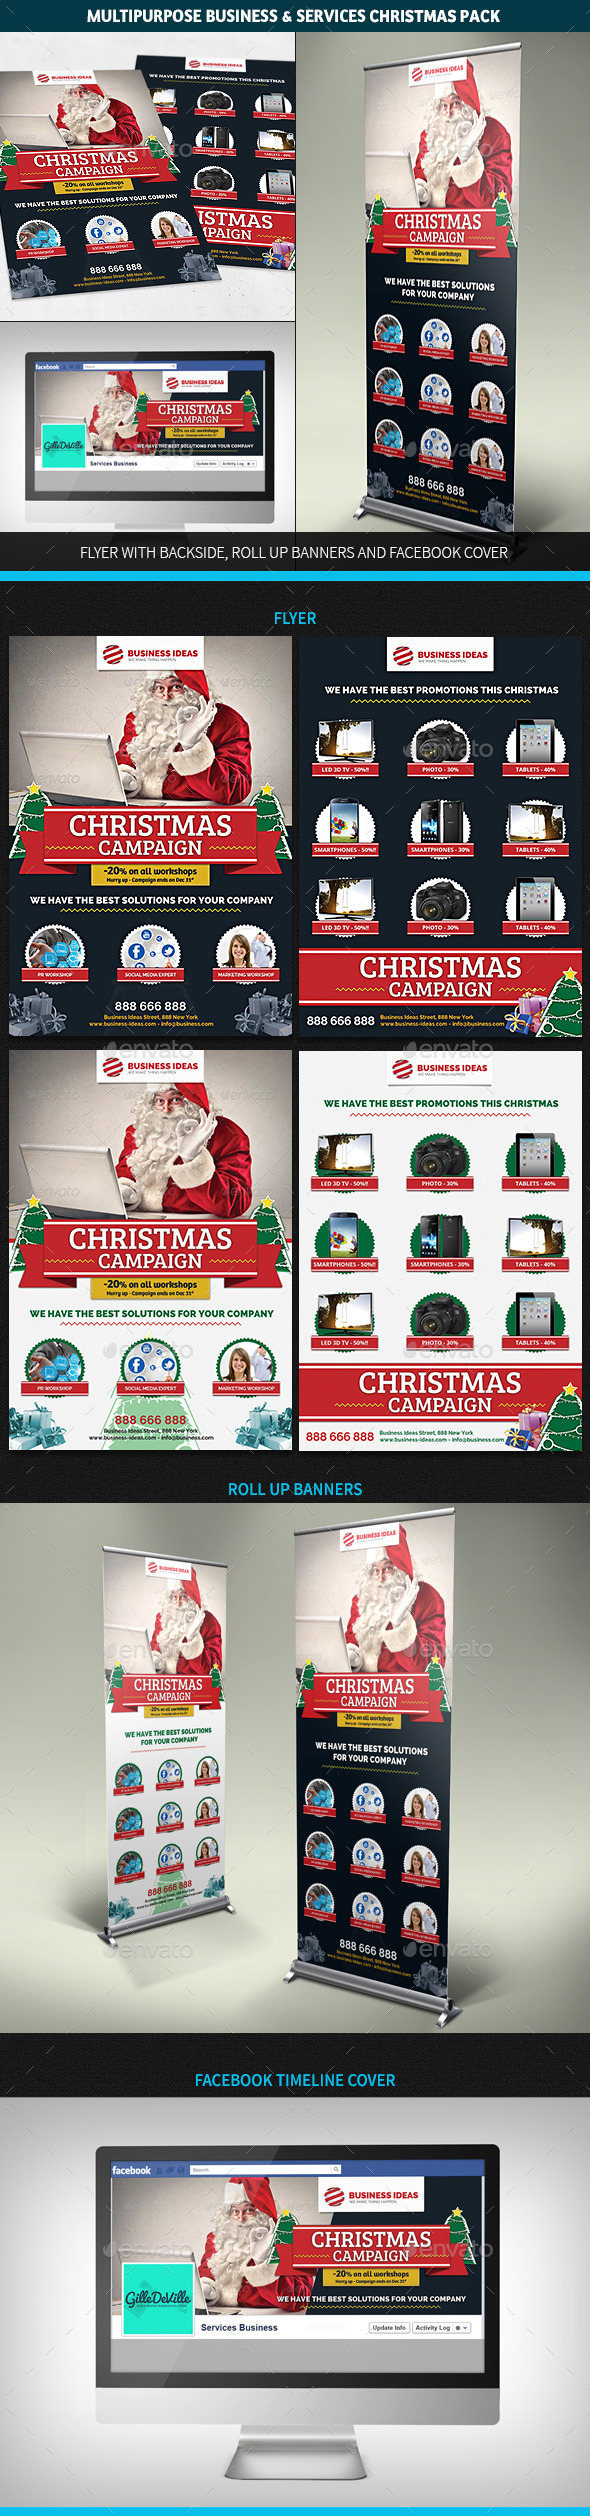 Multipurpose Corporate Business Christmas Pack - Commerce Flyers